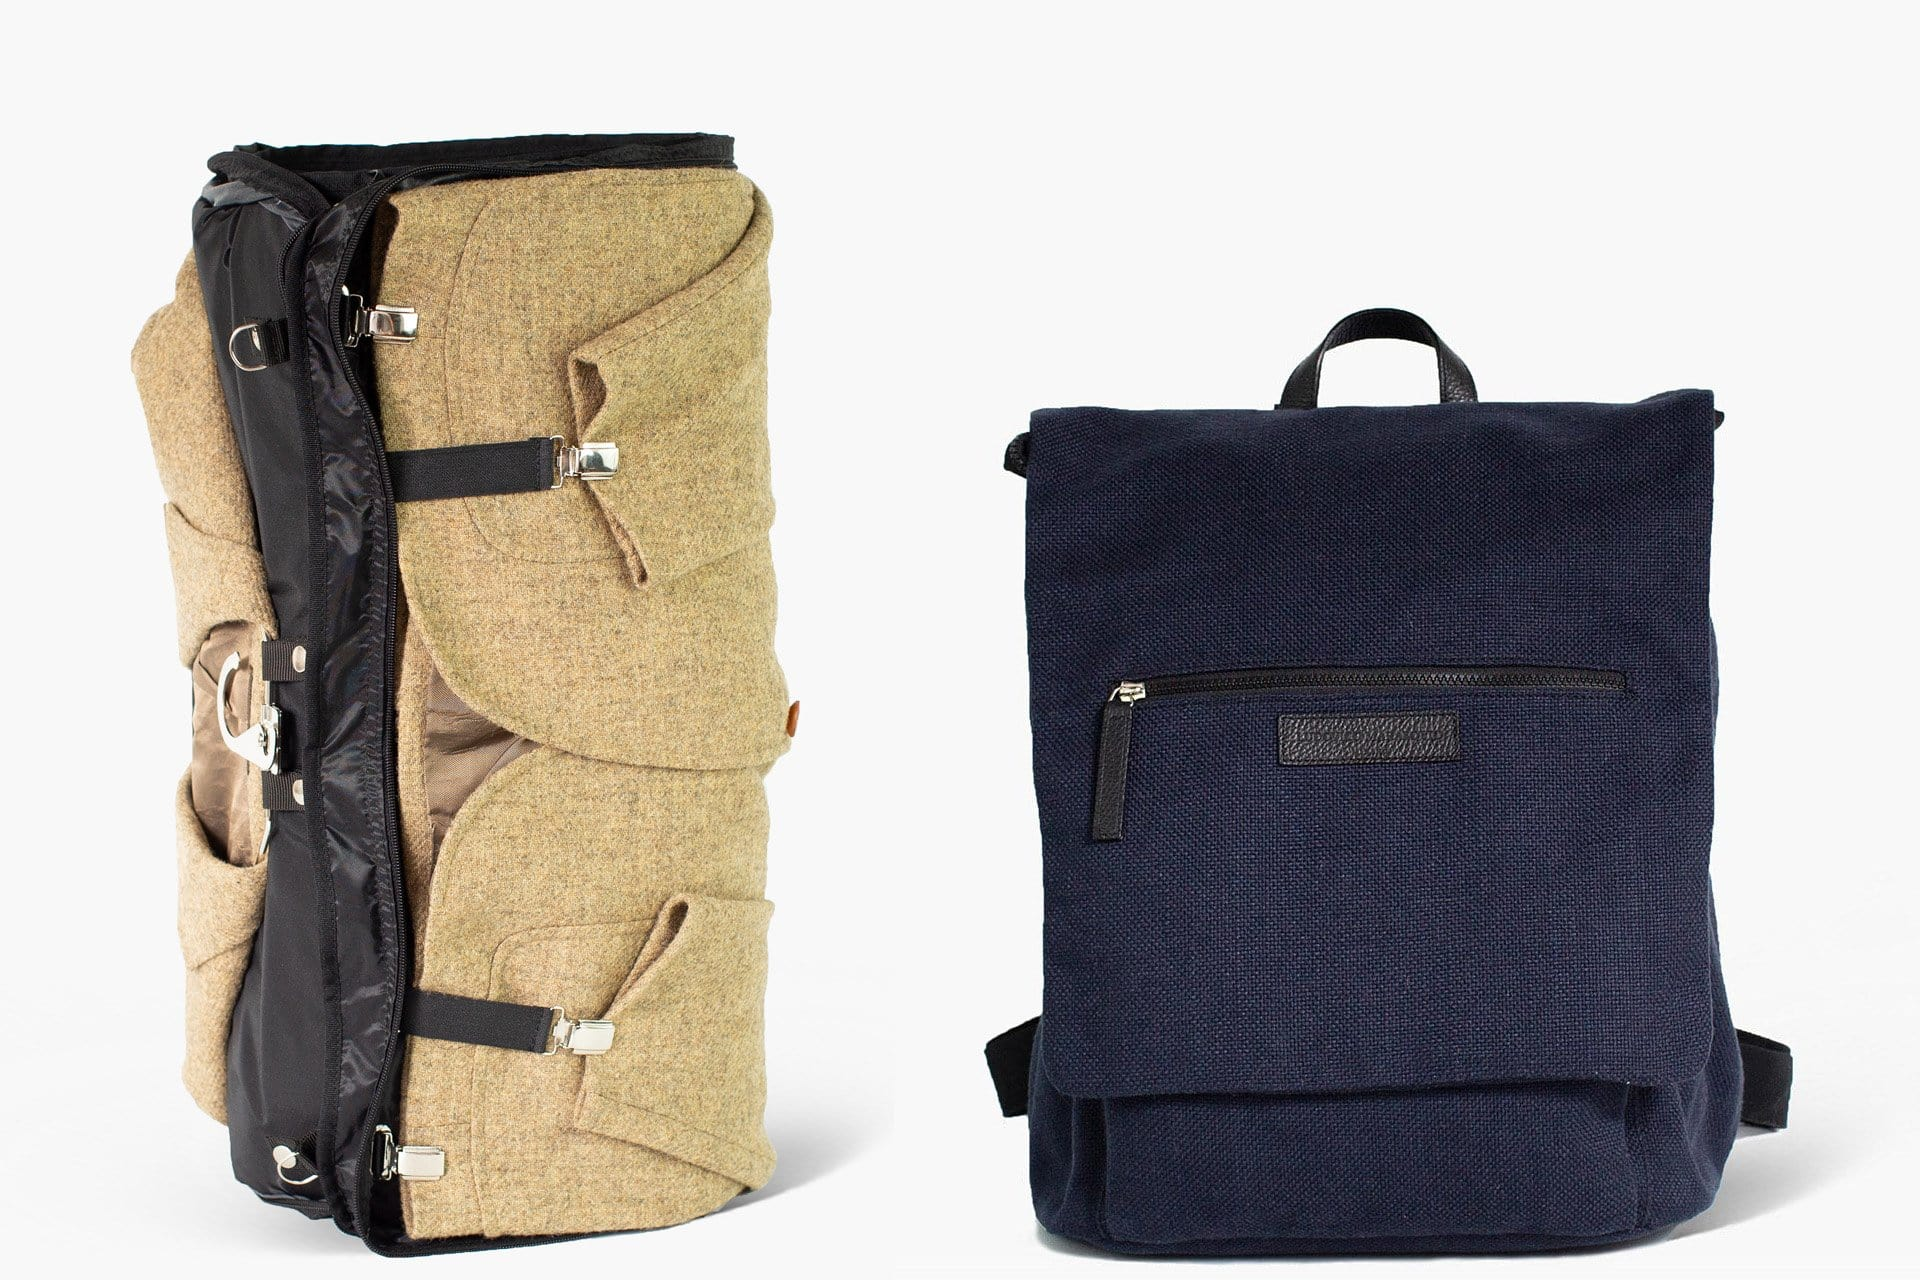 Suit Garment Backpack bag with an extractable travel rolling garment